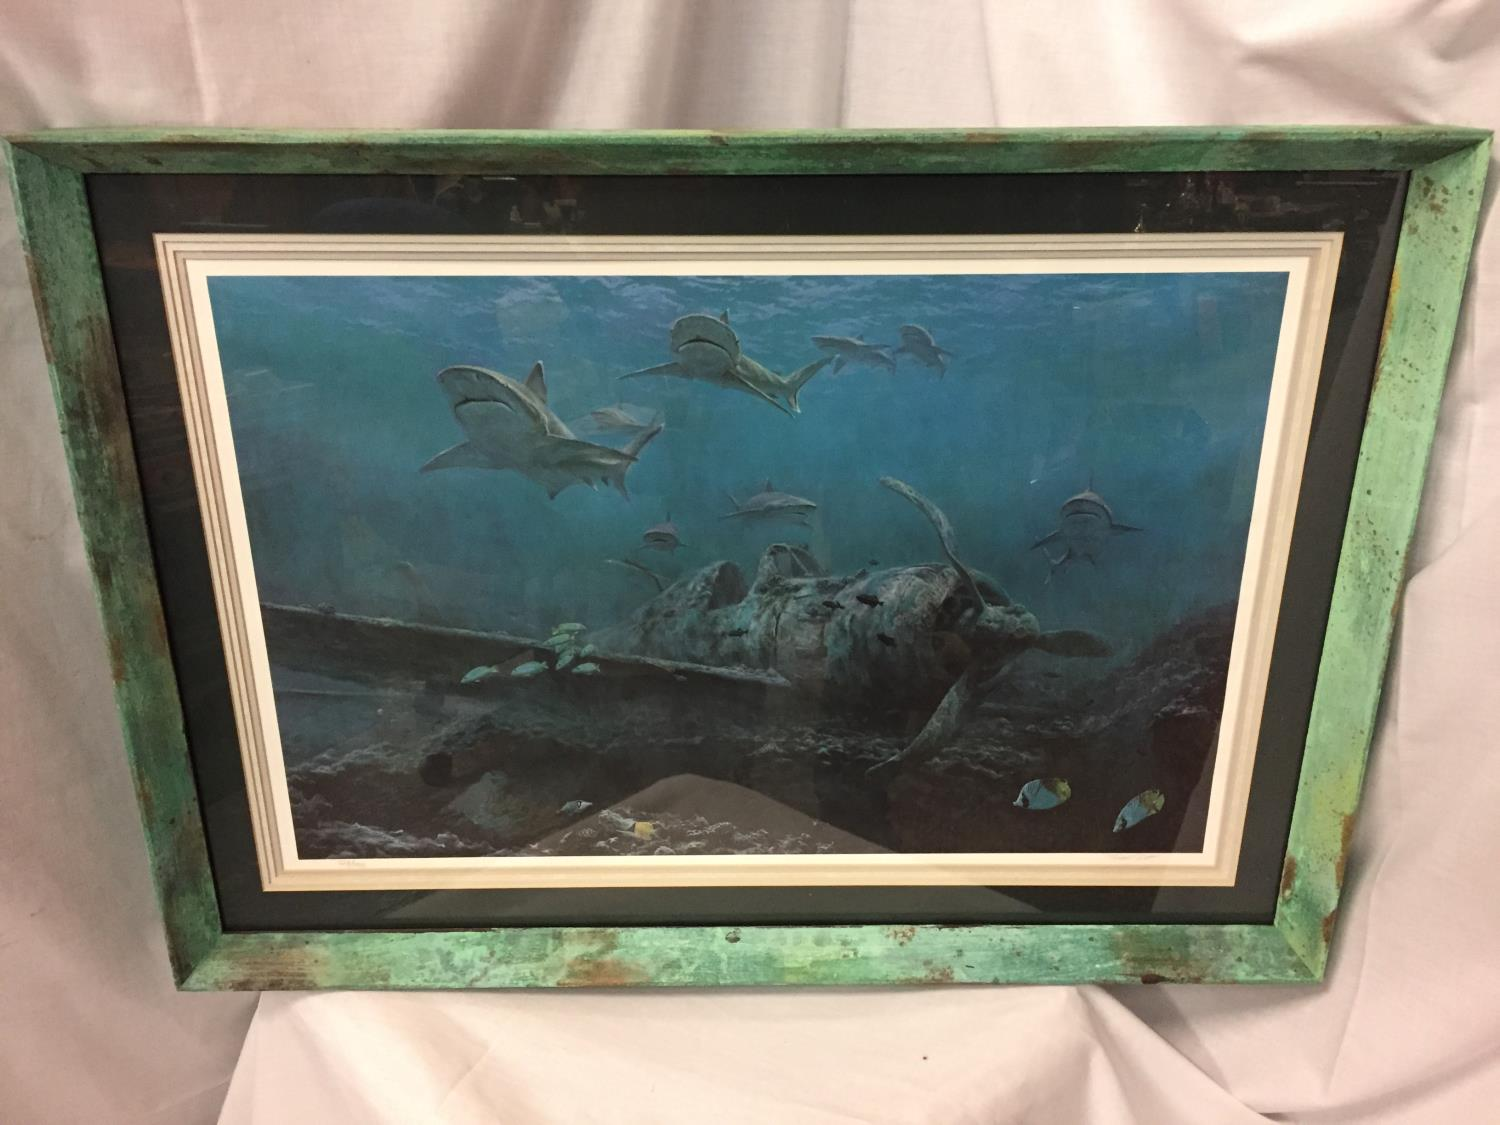 A FRAMED AND SIGNED LIMITED EDITION 528/750 COLOURED PRINT OF A WORLD WAR 11 SUBMERGED FIGHTER PLANE